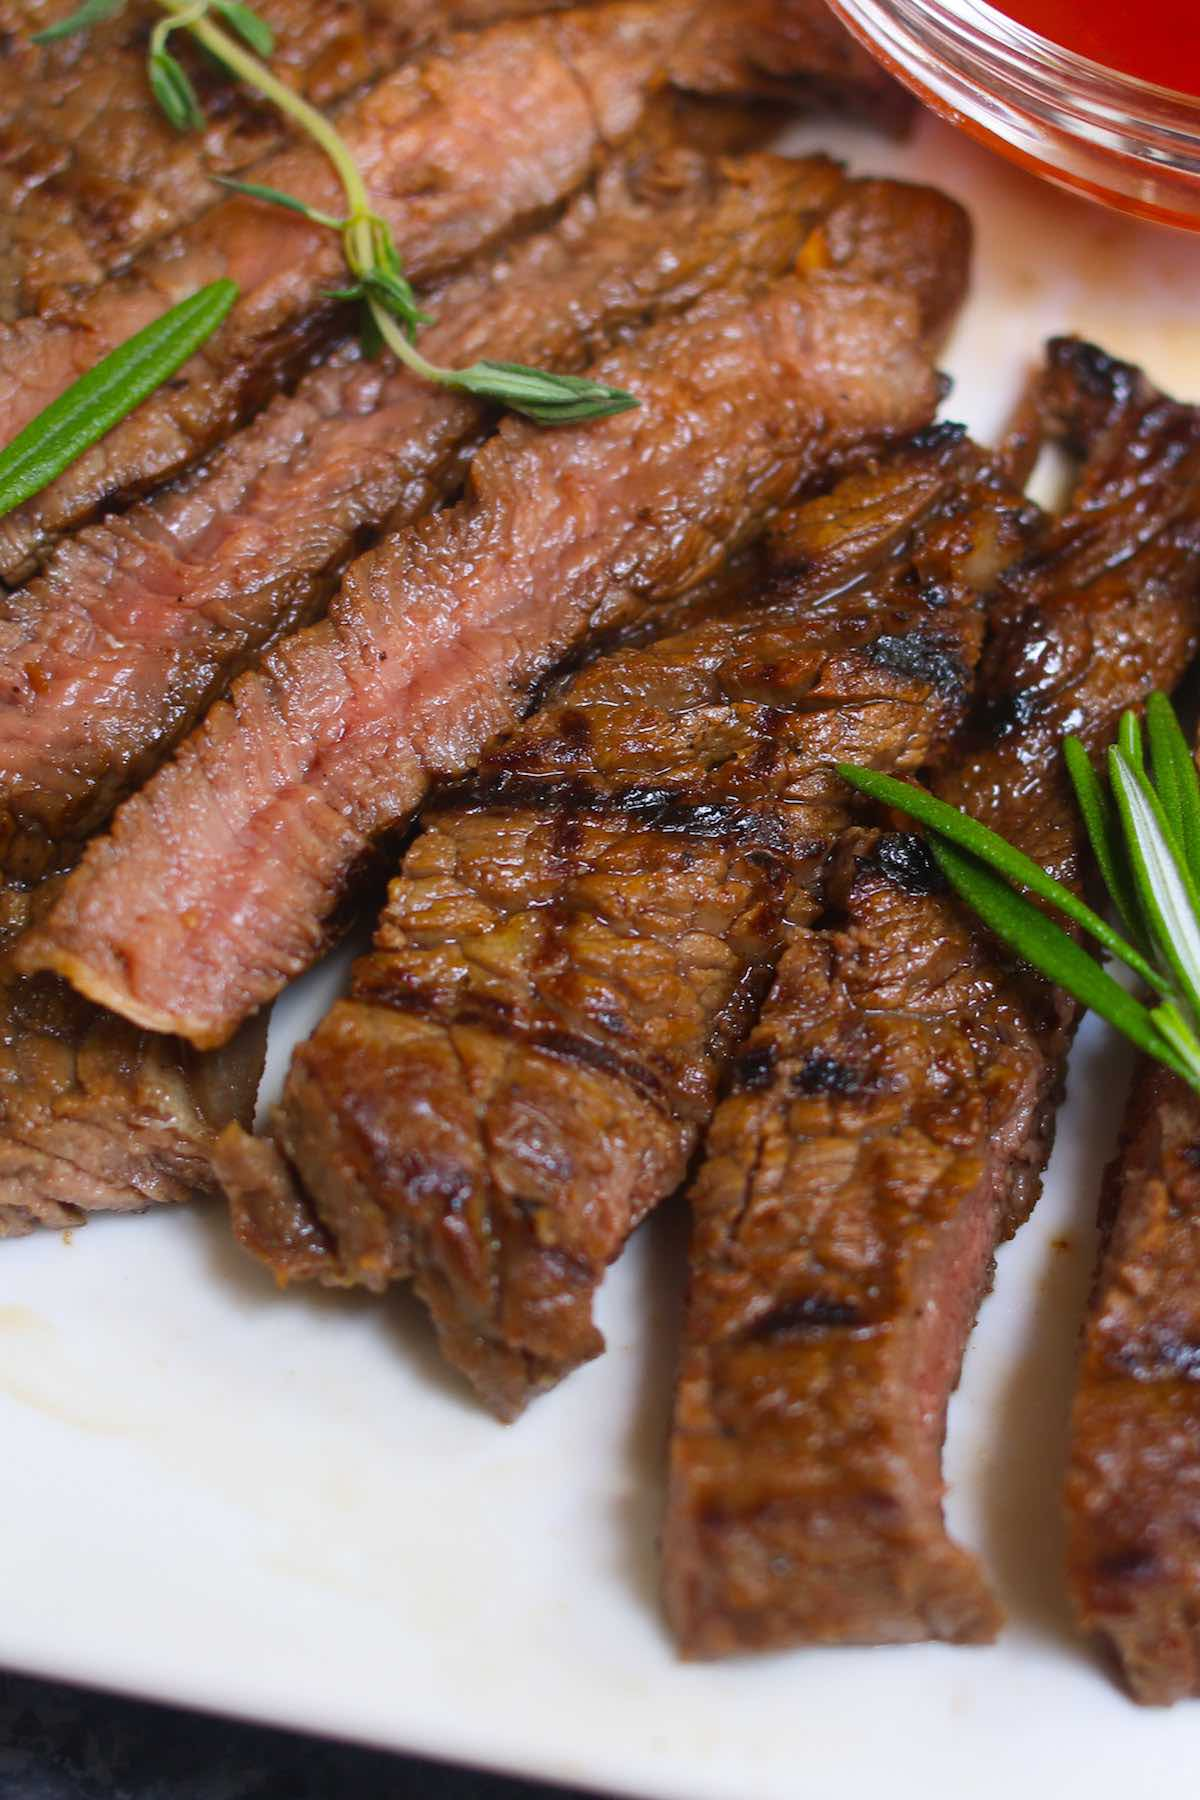 Closeup of perfectly grilled steak with crosshatch grill marks and a tender and juicy interior